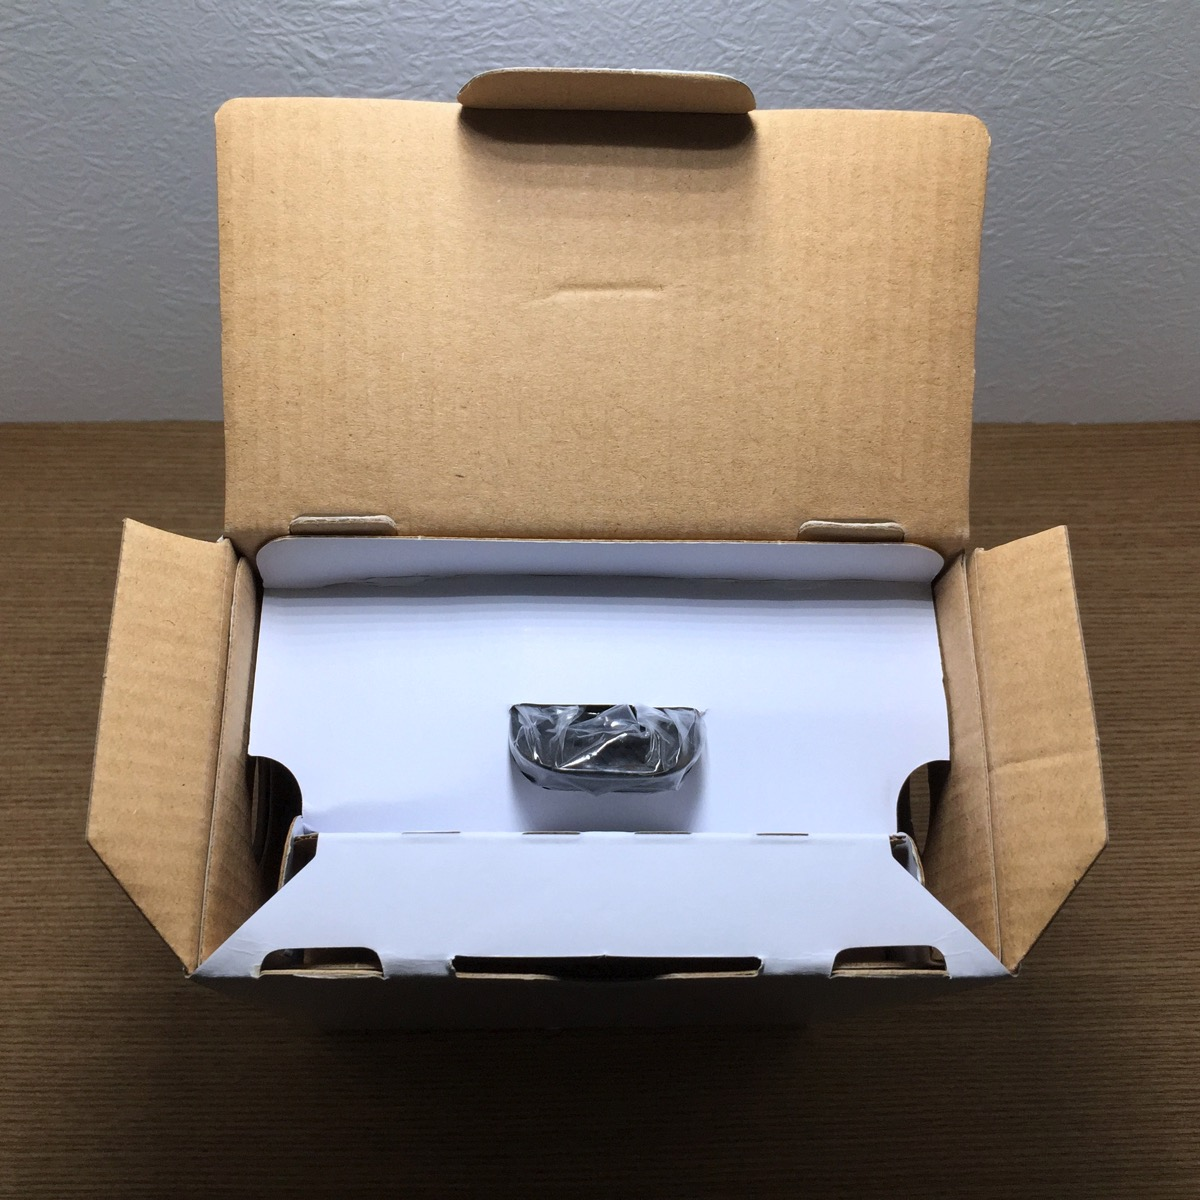 Griffin WatchStand Charging Dock - Opened Packaging